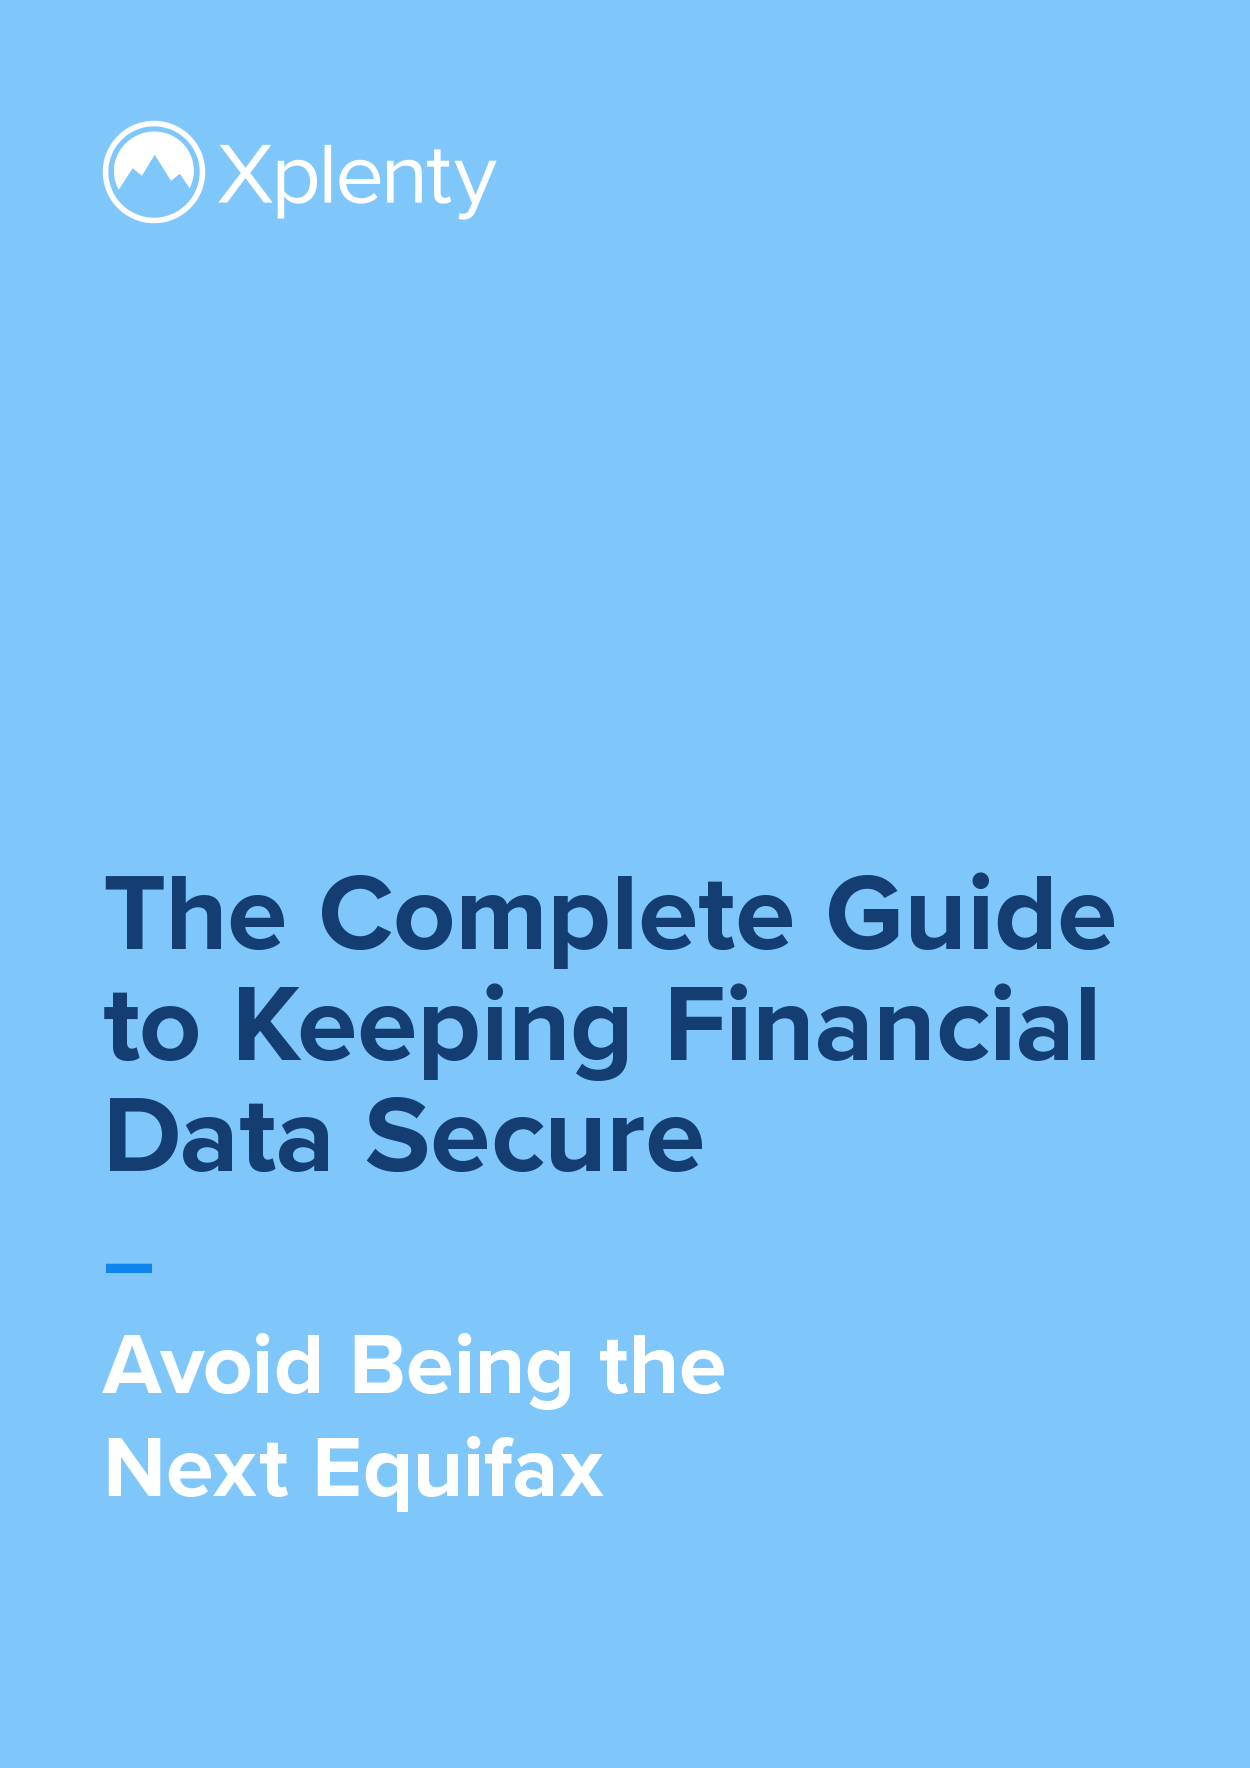 The Complete Guide to Keeping Financial Data Secure